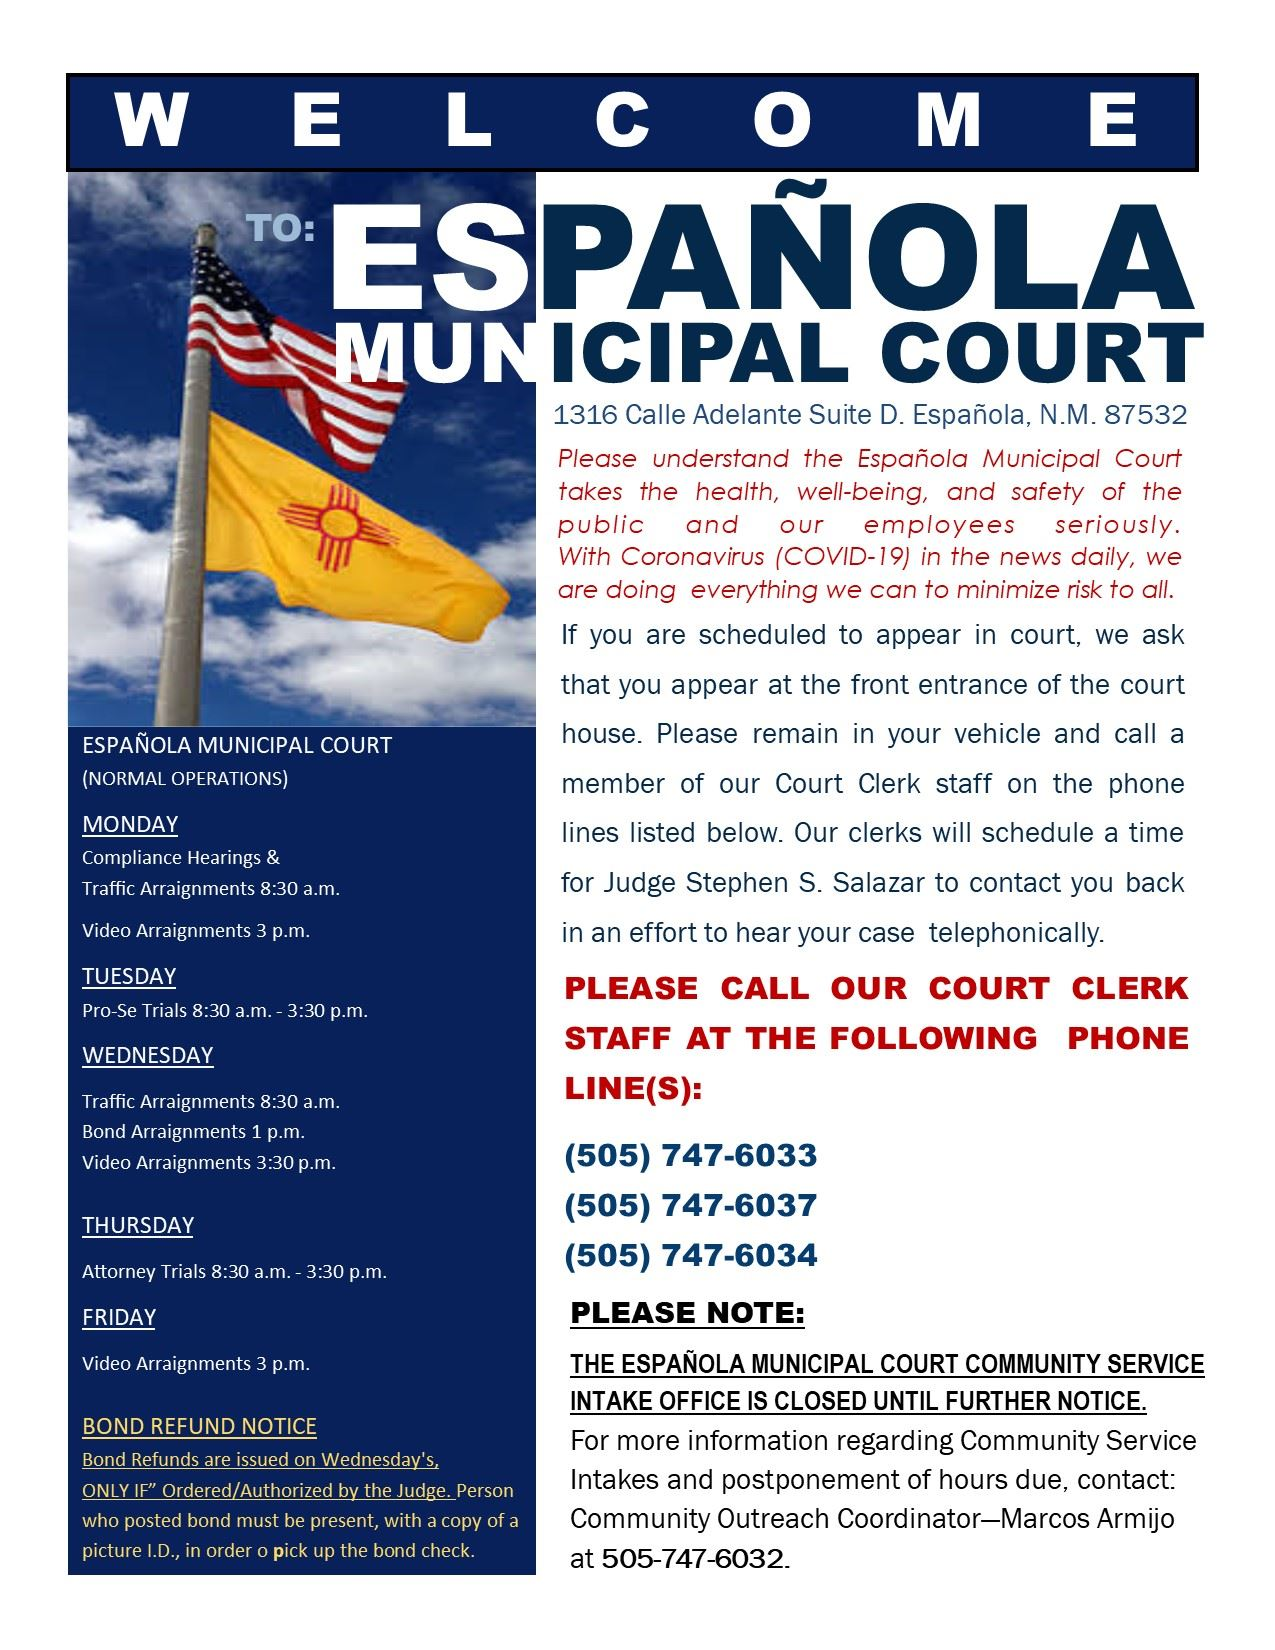 Municipal Court Website info due to COVID-19pub